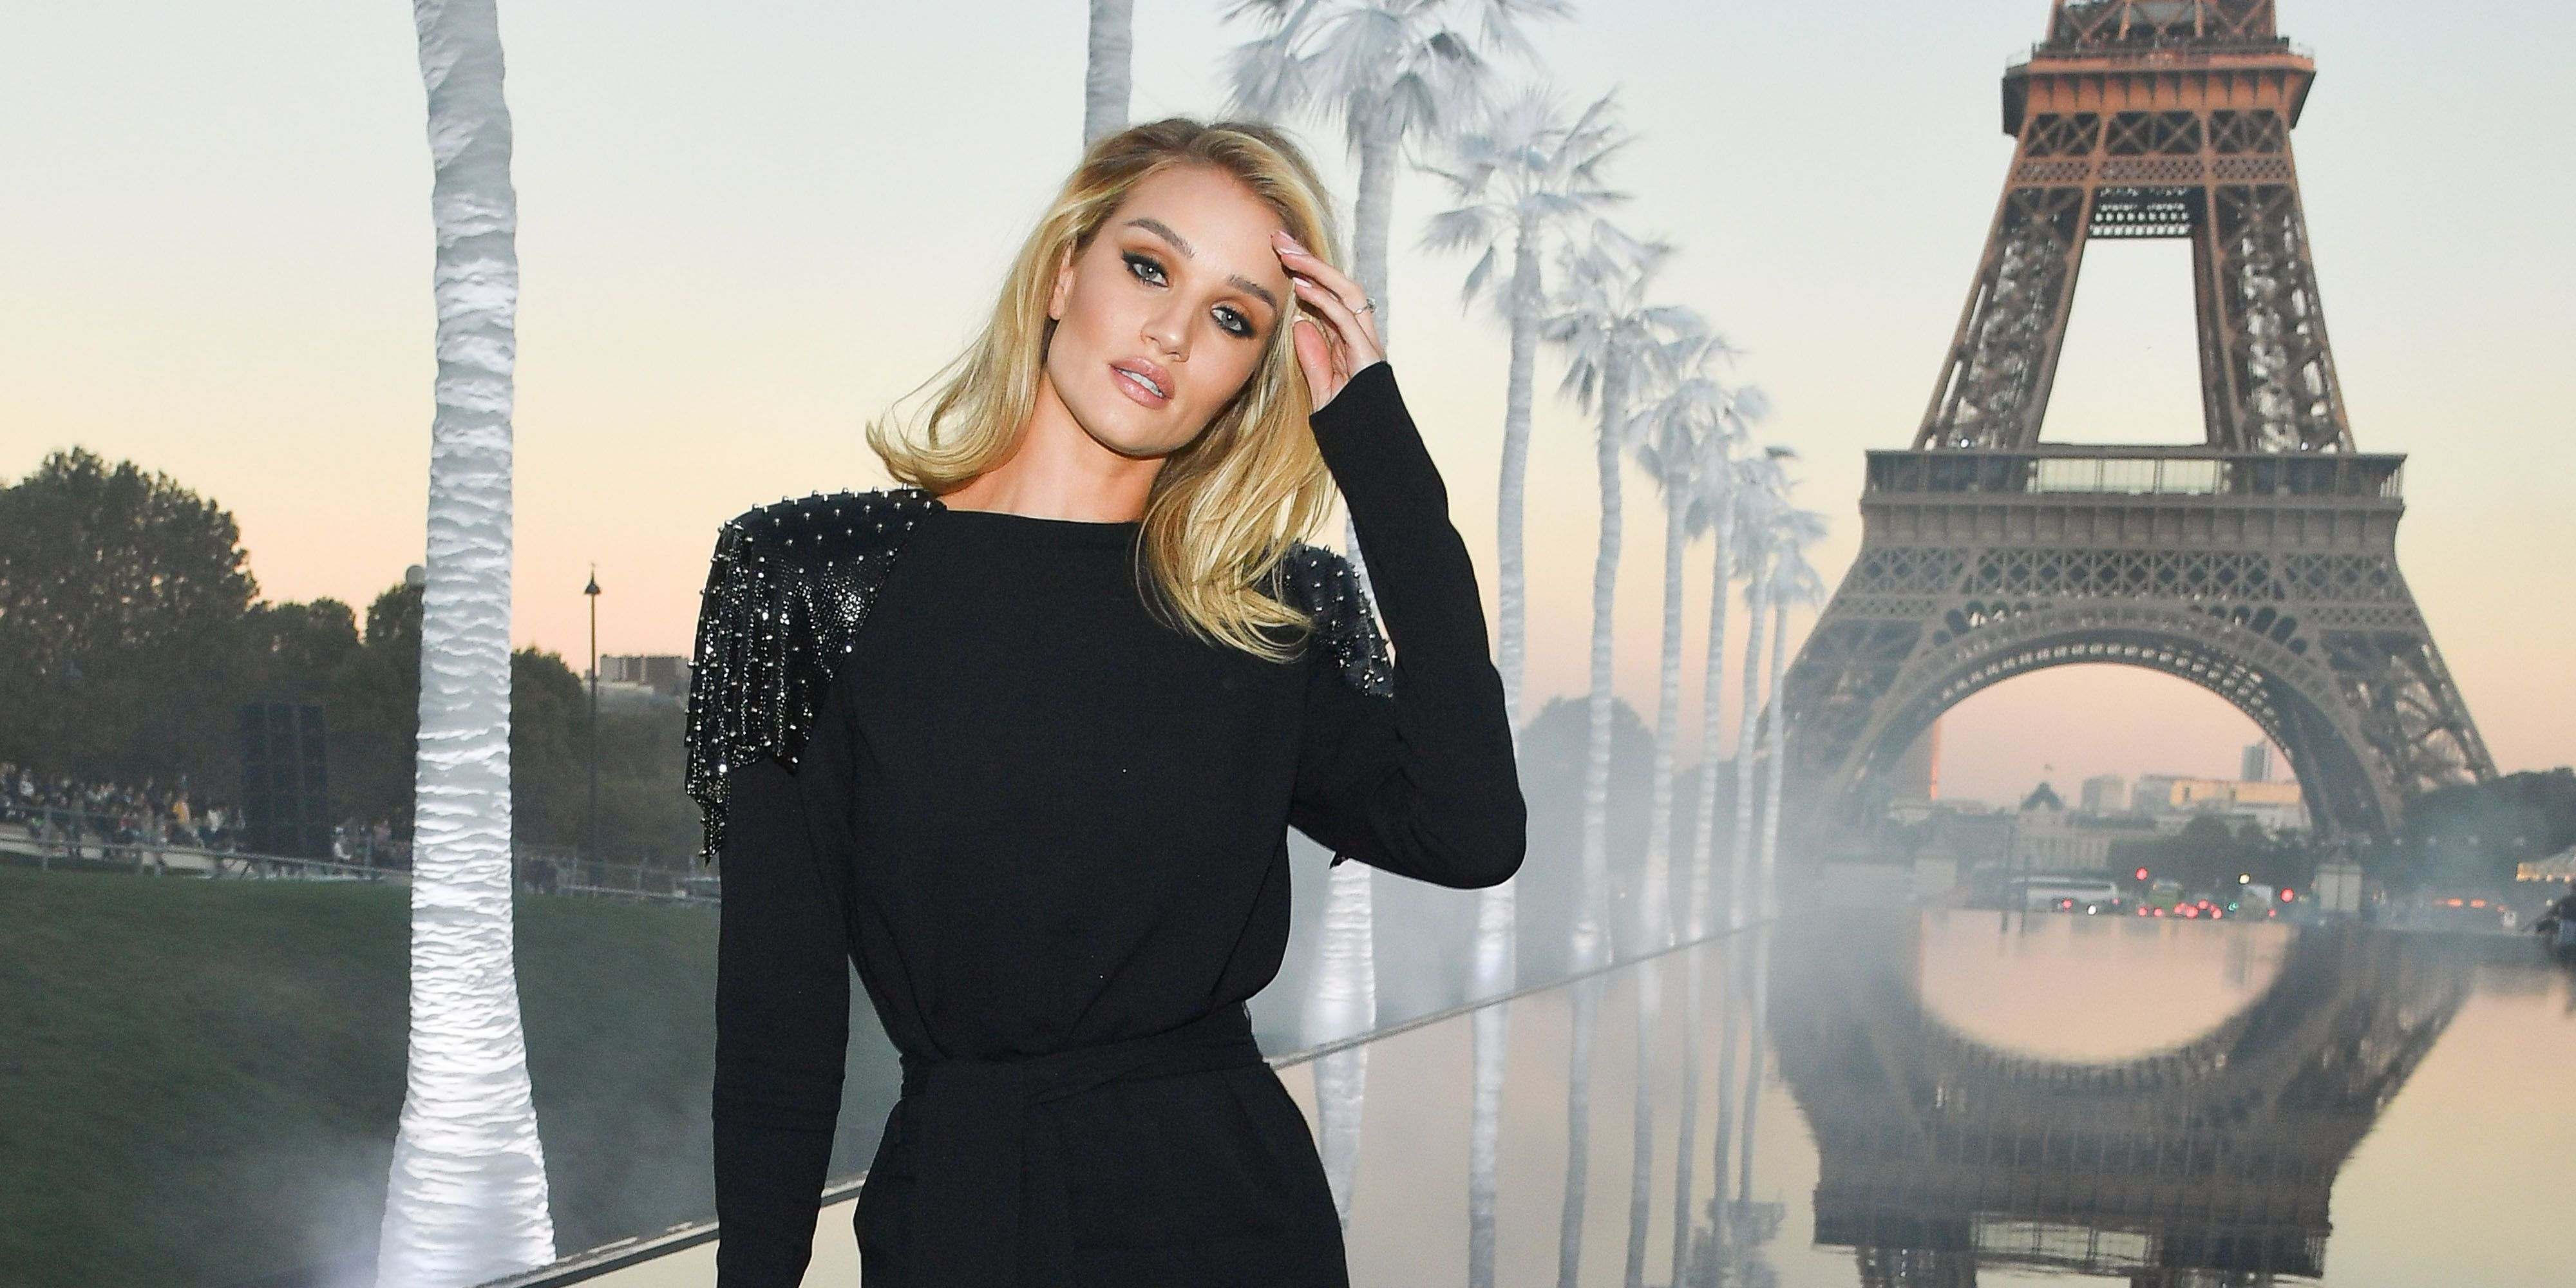 Rosie Huntington-Whiteley nails the coolest take on the French manicure revival